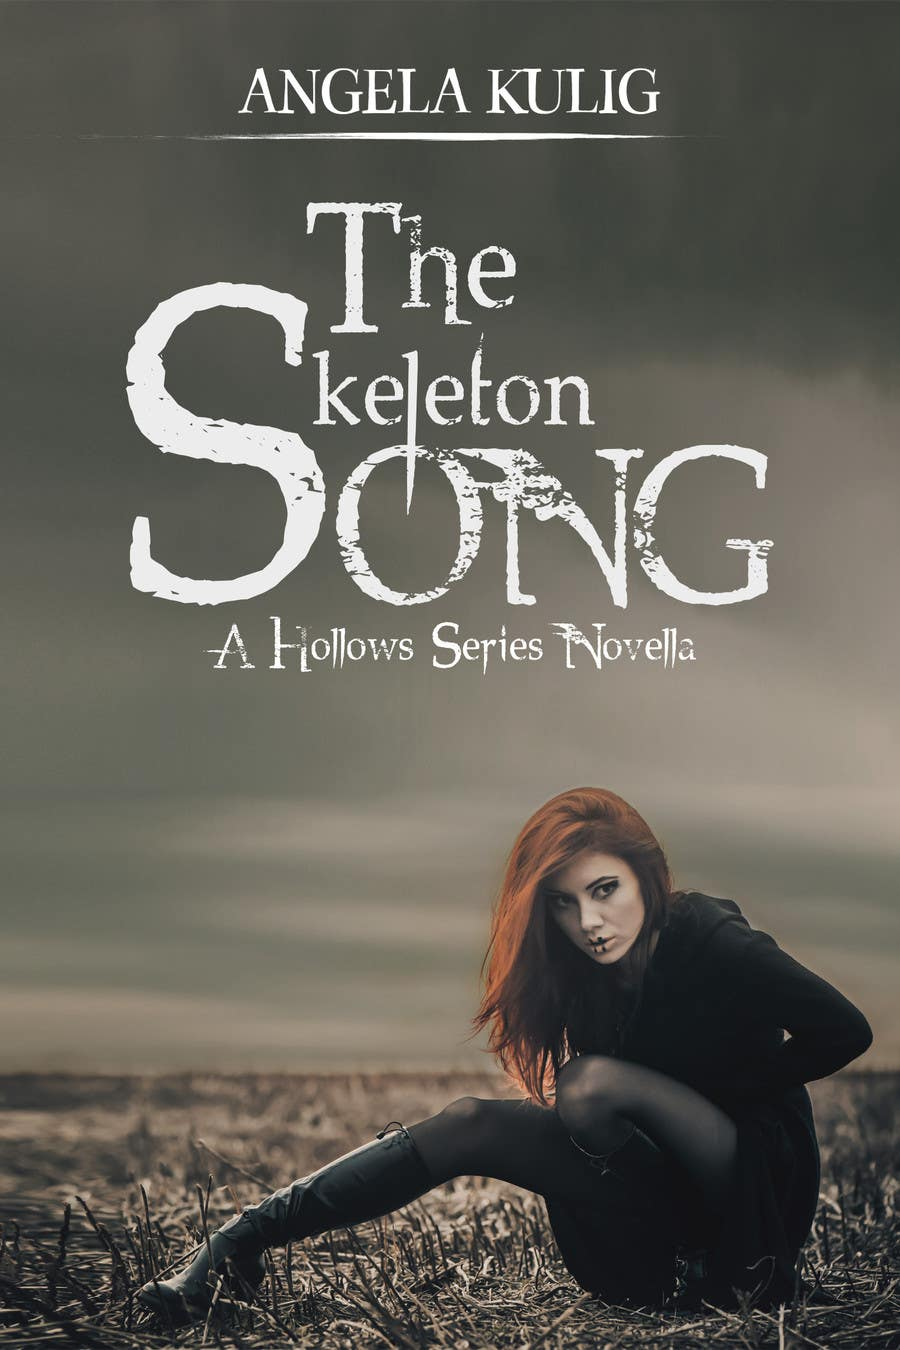 Konkurrenceindlæg #177 for The Skeleton Song New Cover